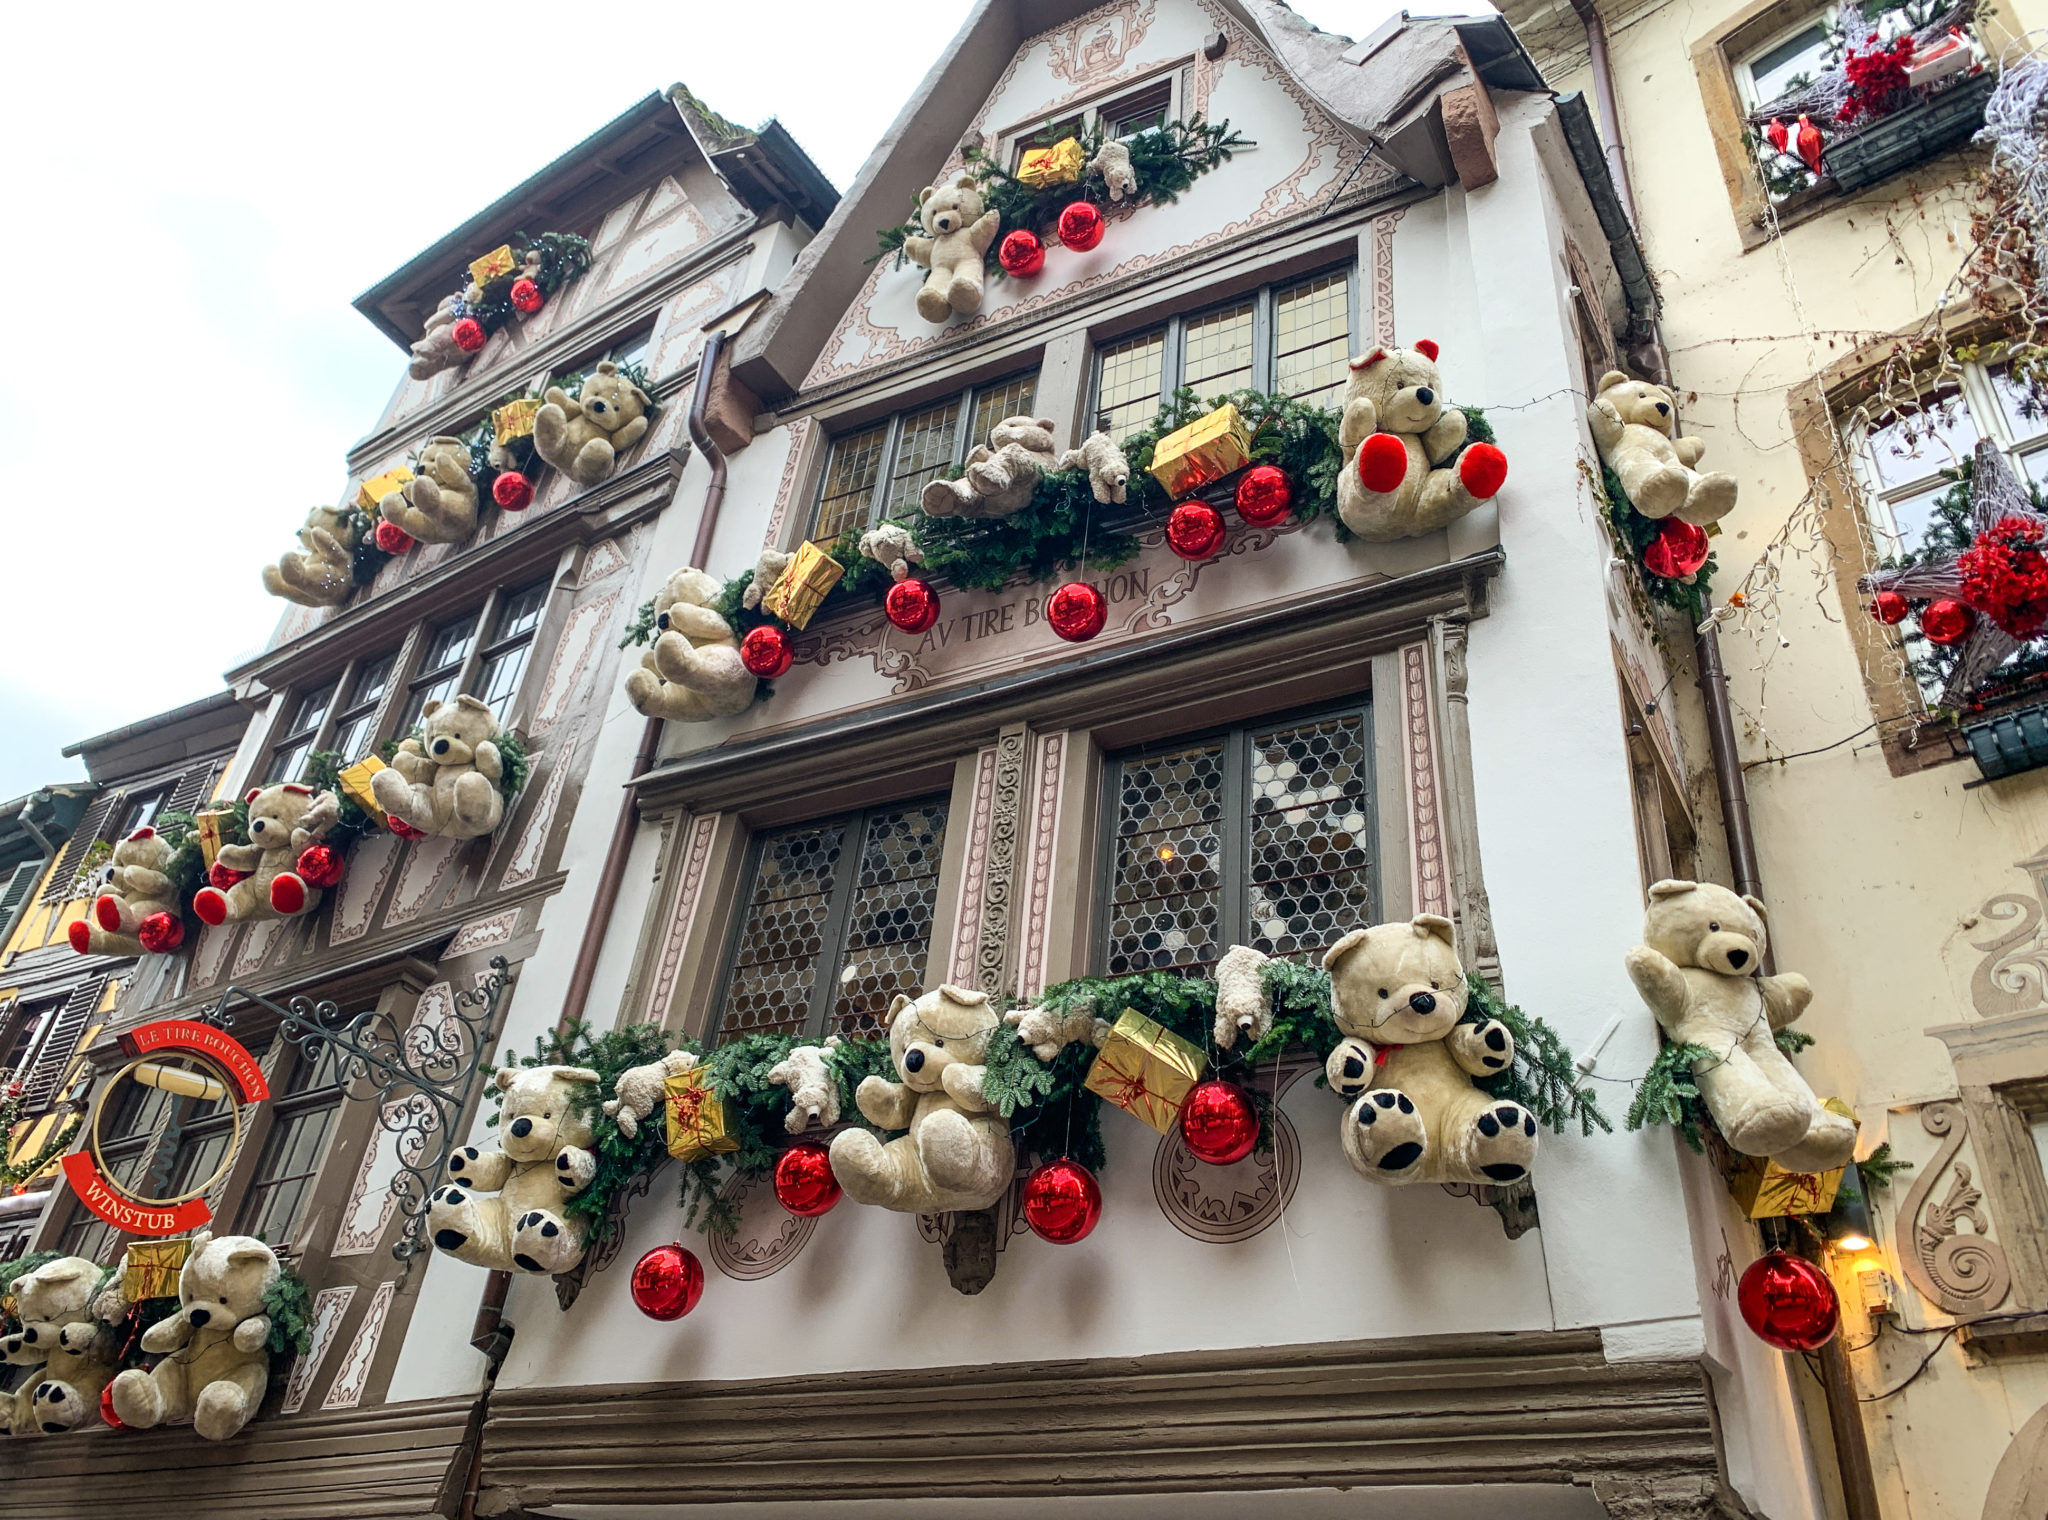 Teddy bears decorating a house in Strasbourg at Christmas